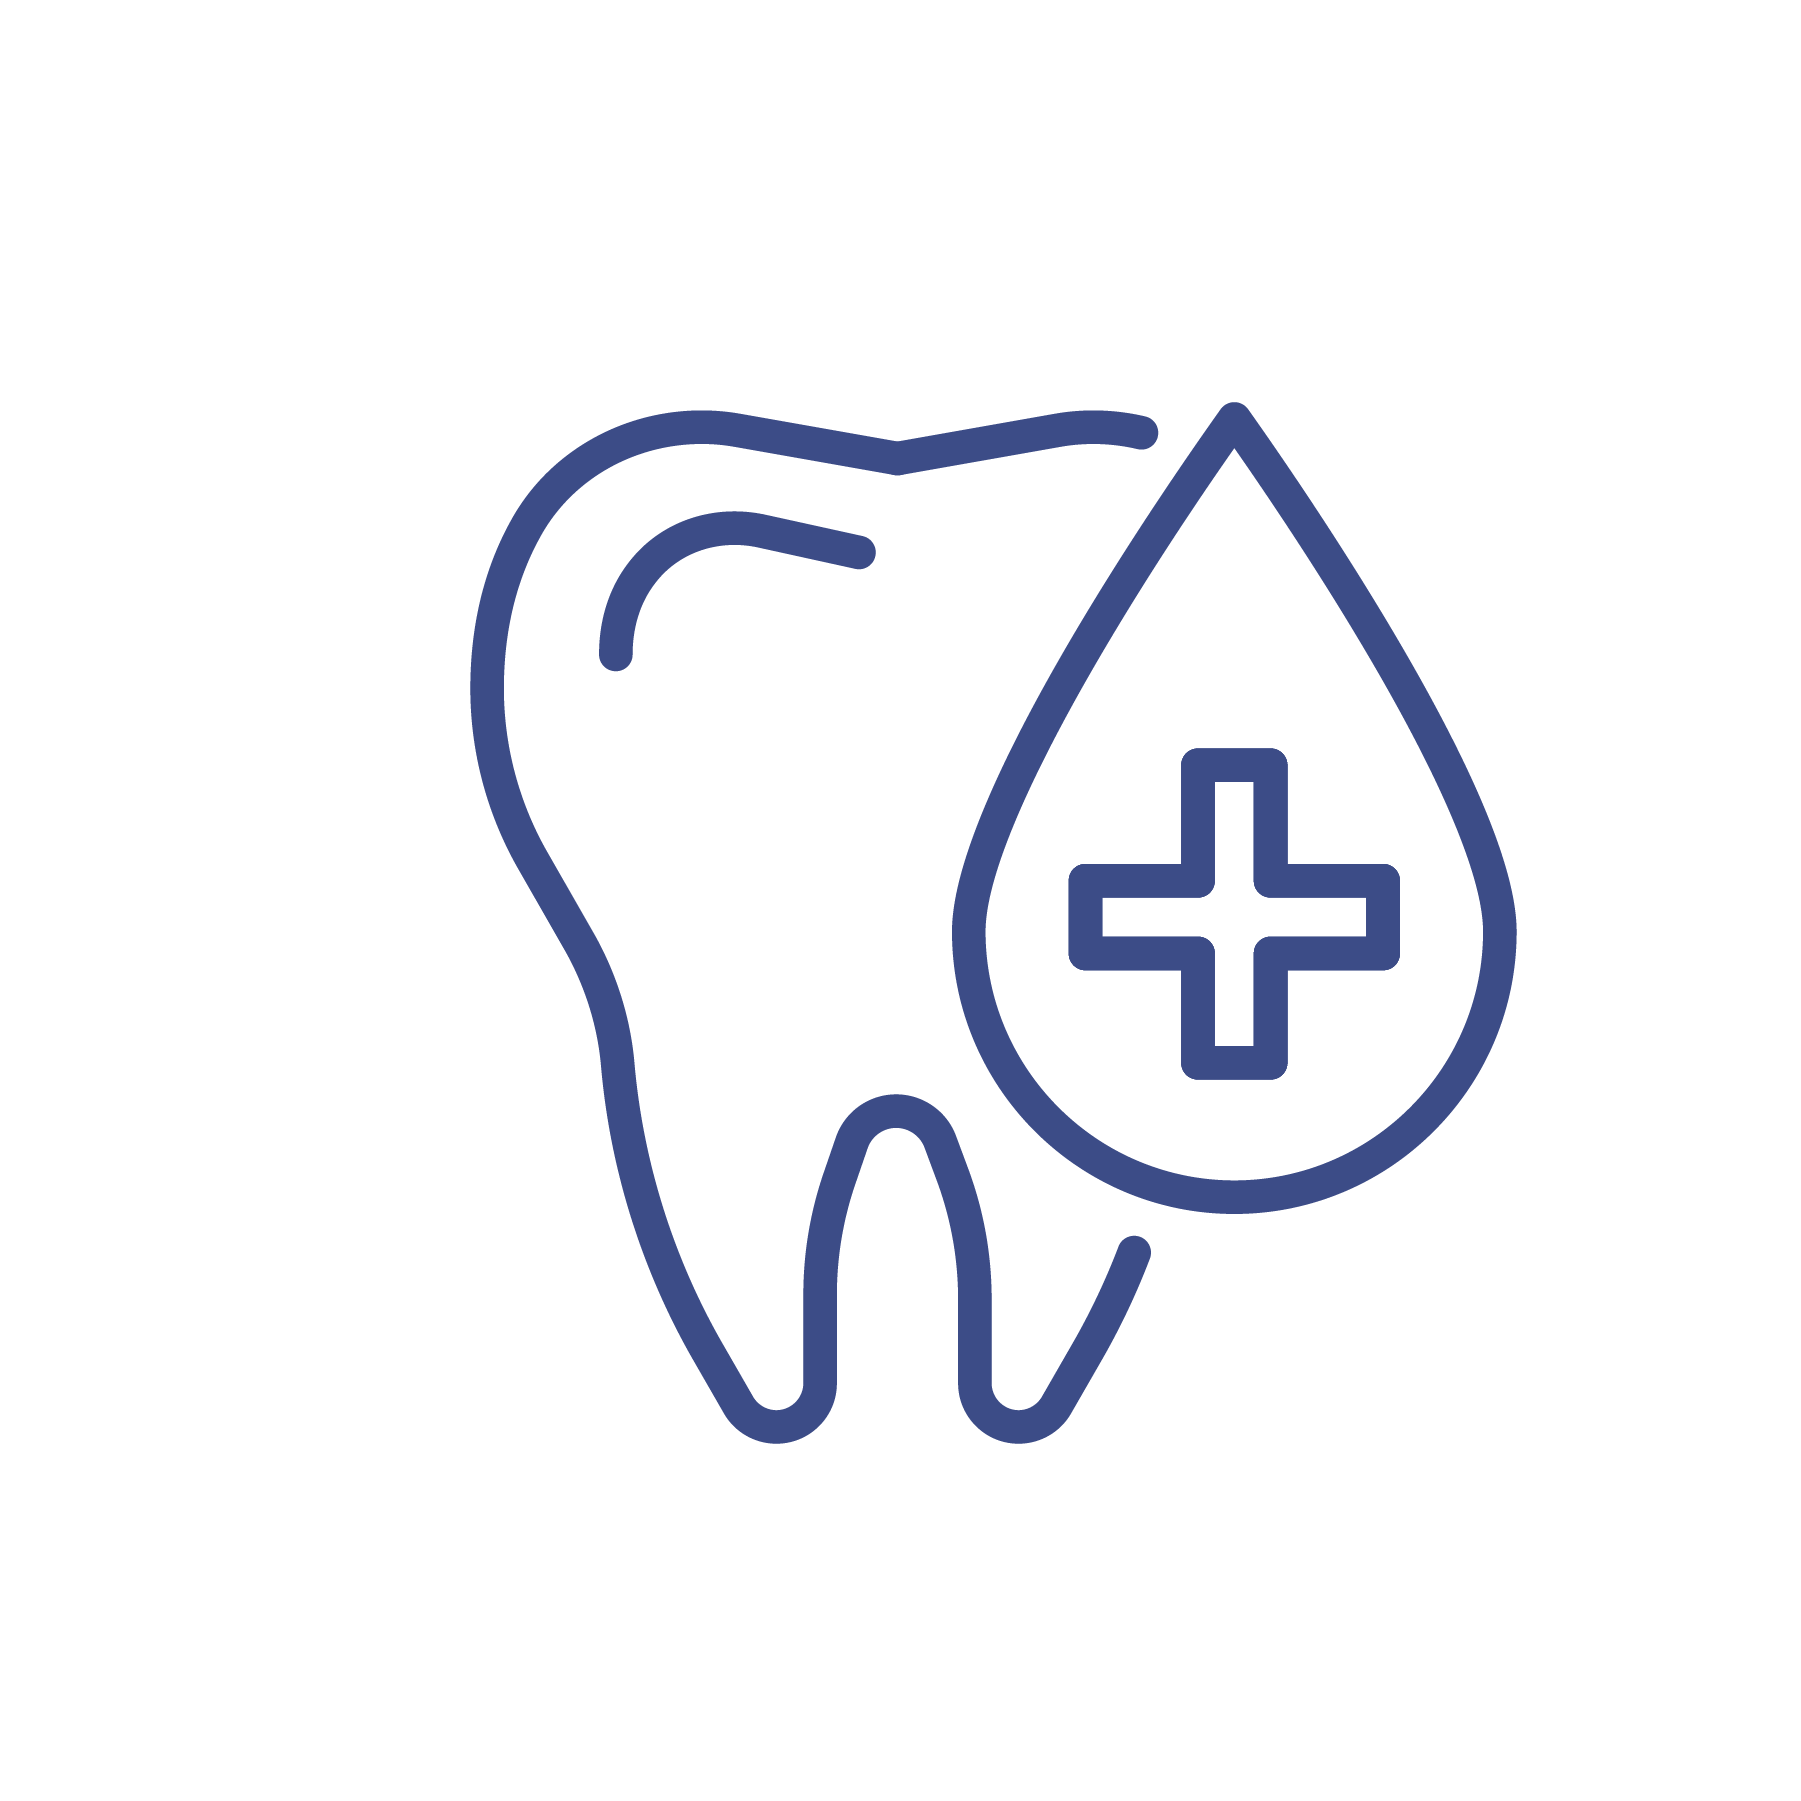 Tooth and care icon